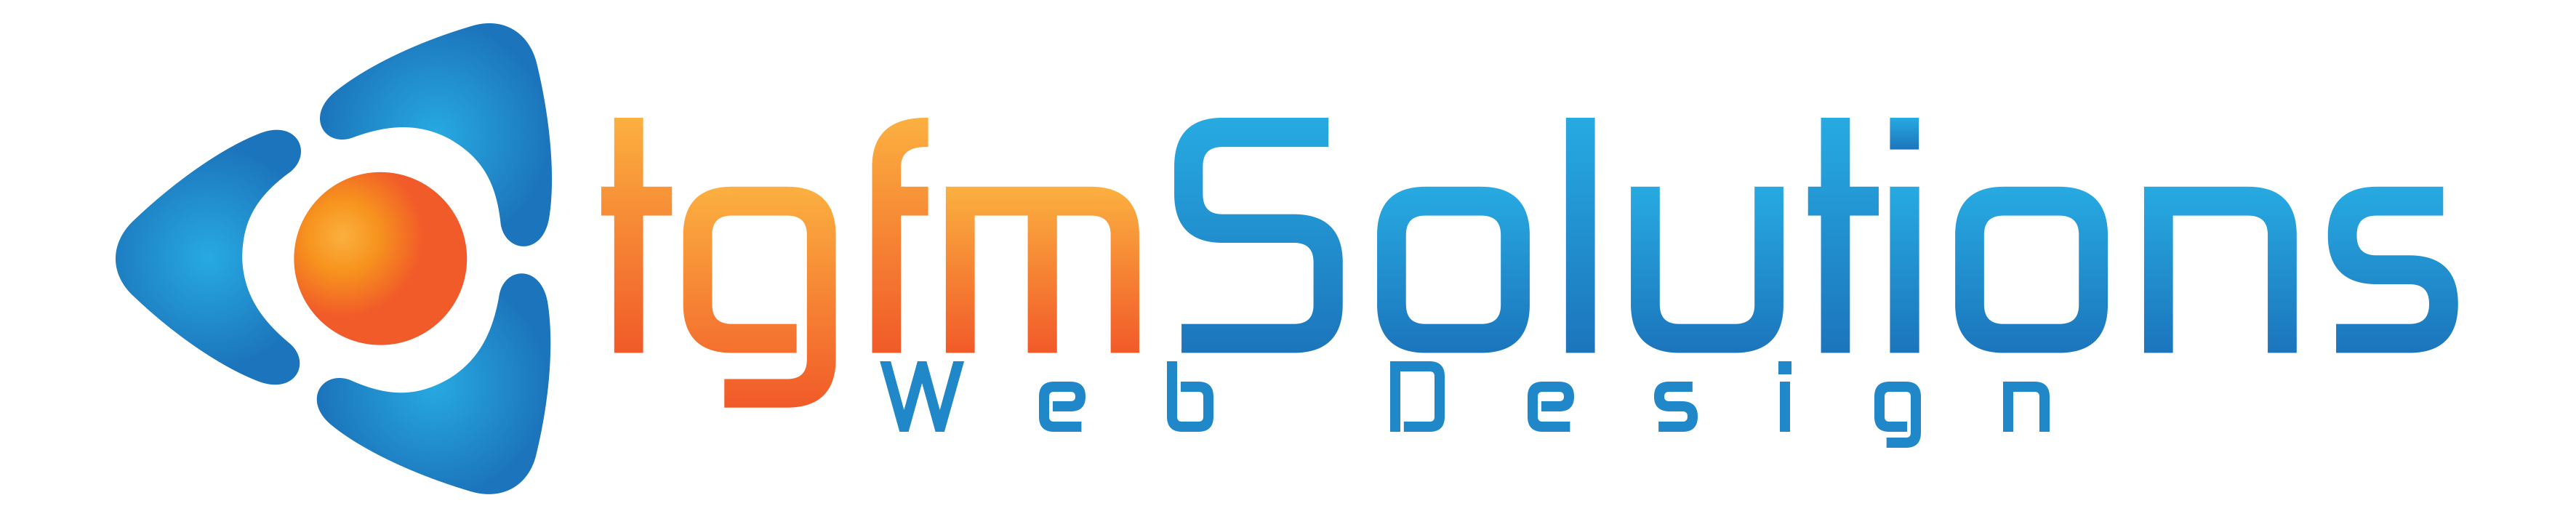 tgfmSolutions Web Design Logo